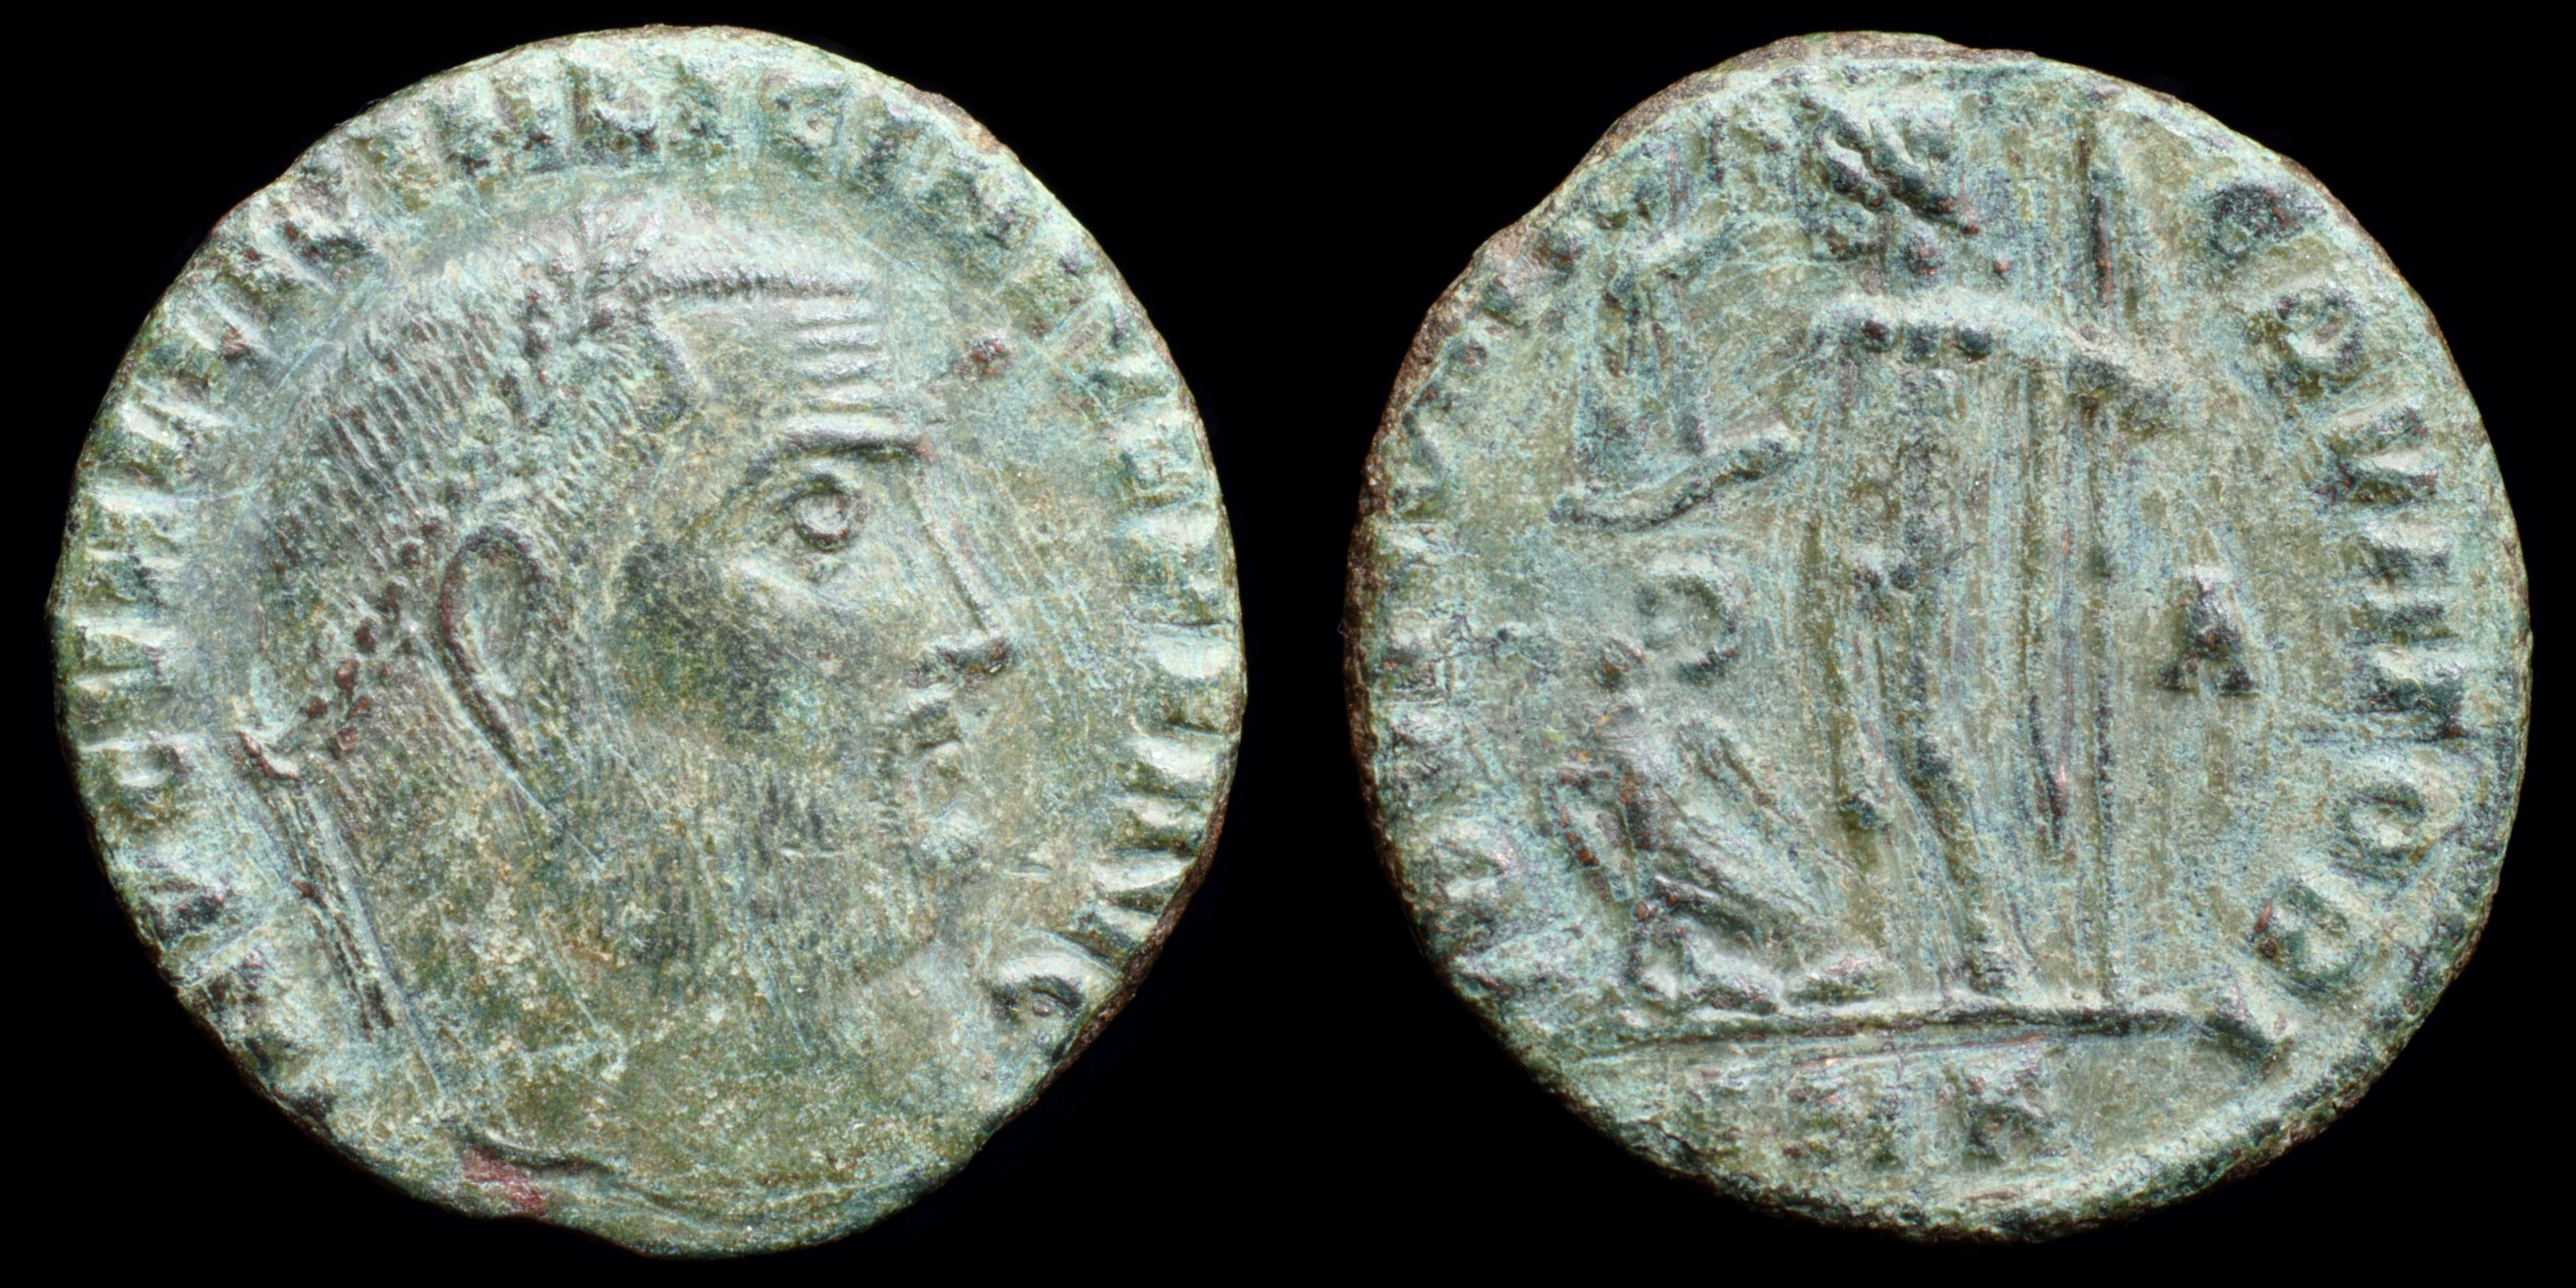 /Files/Images/Coinsite/CoinDB/318_Licinius_Jupiter_Cyzicus.jpg